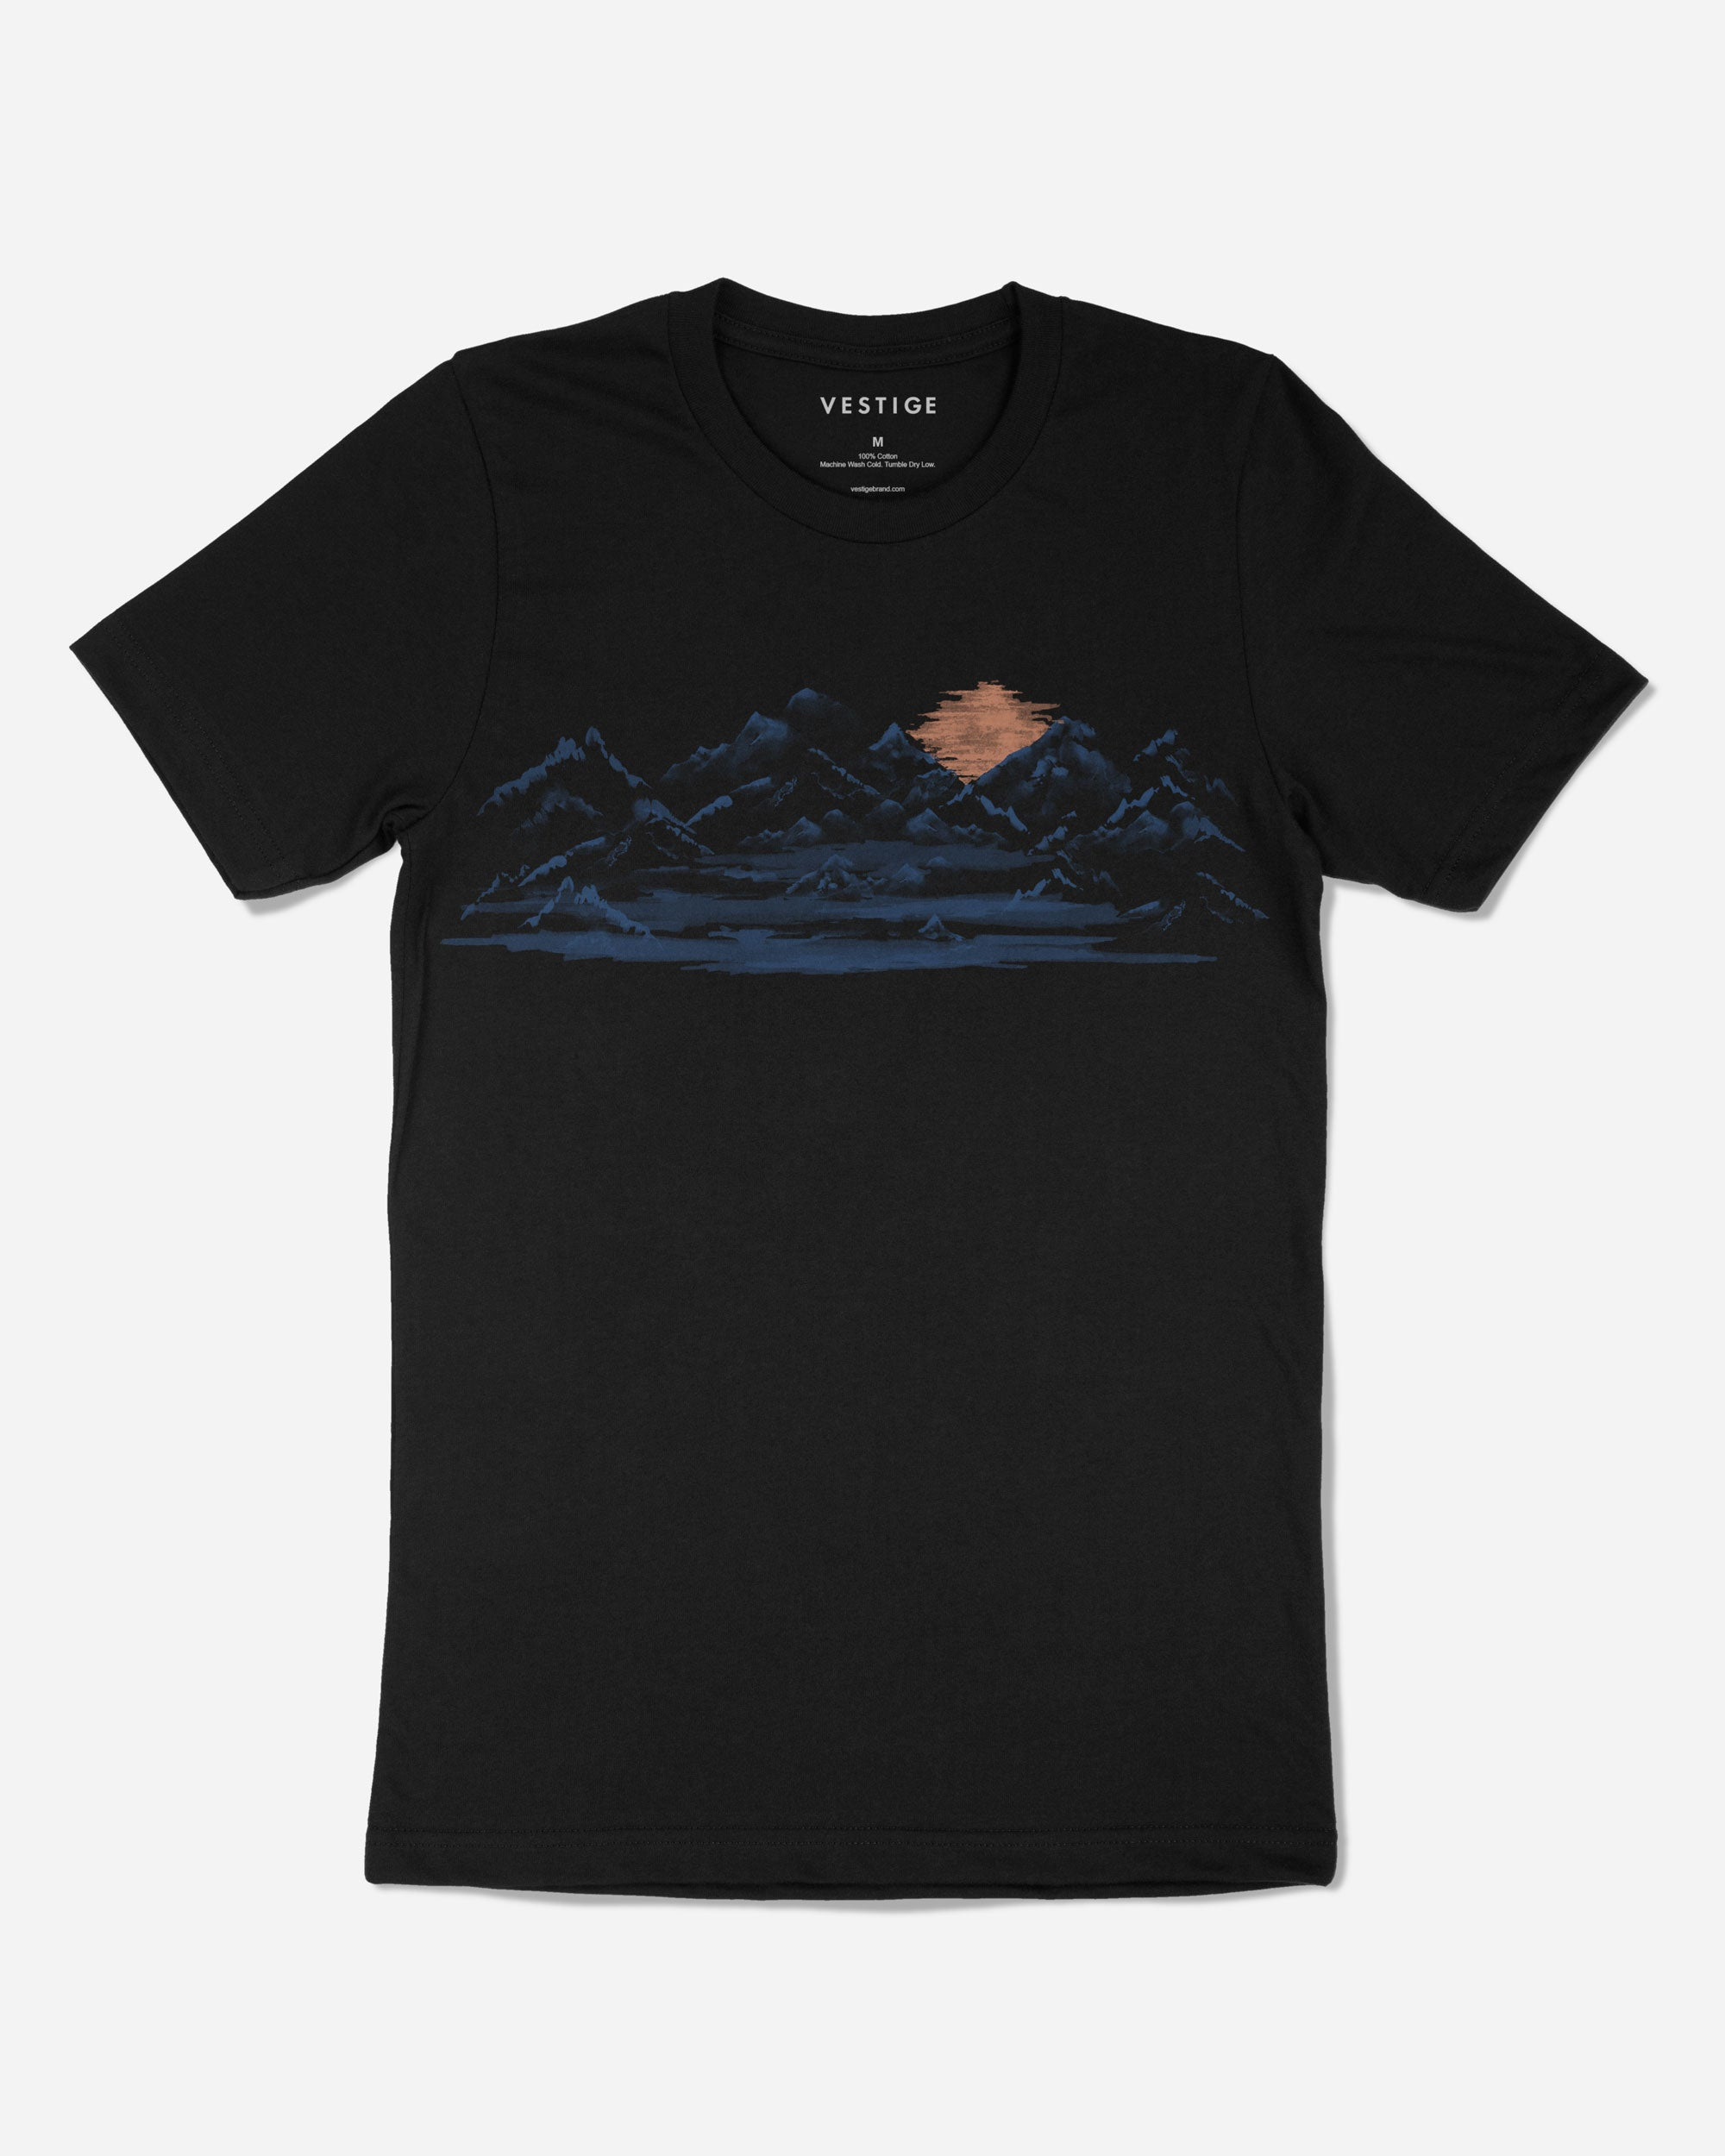 Sunset Mountain T-Shirt, Black